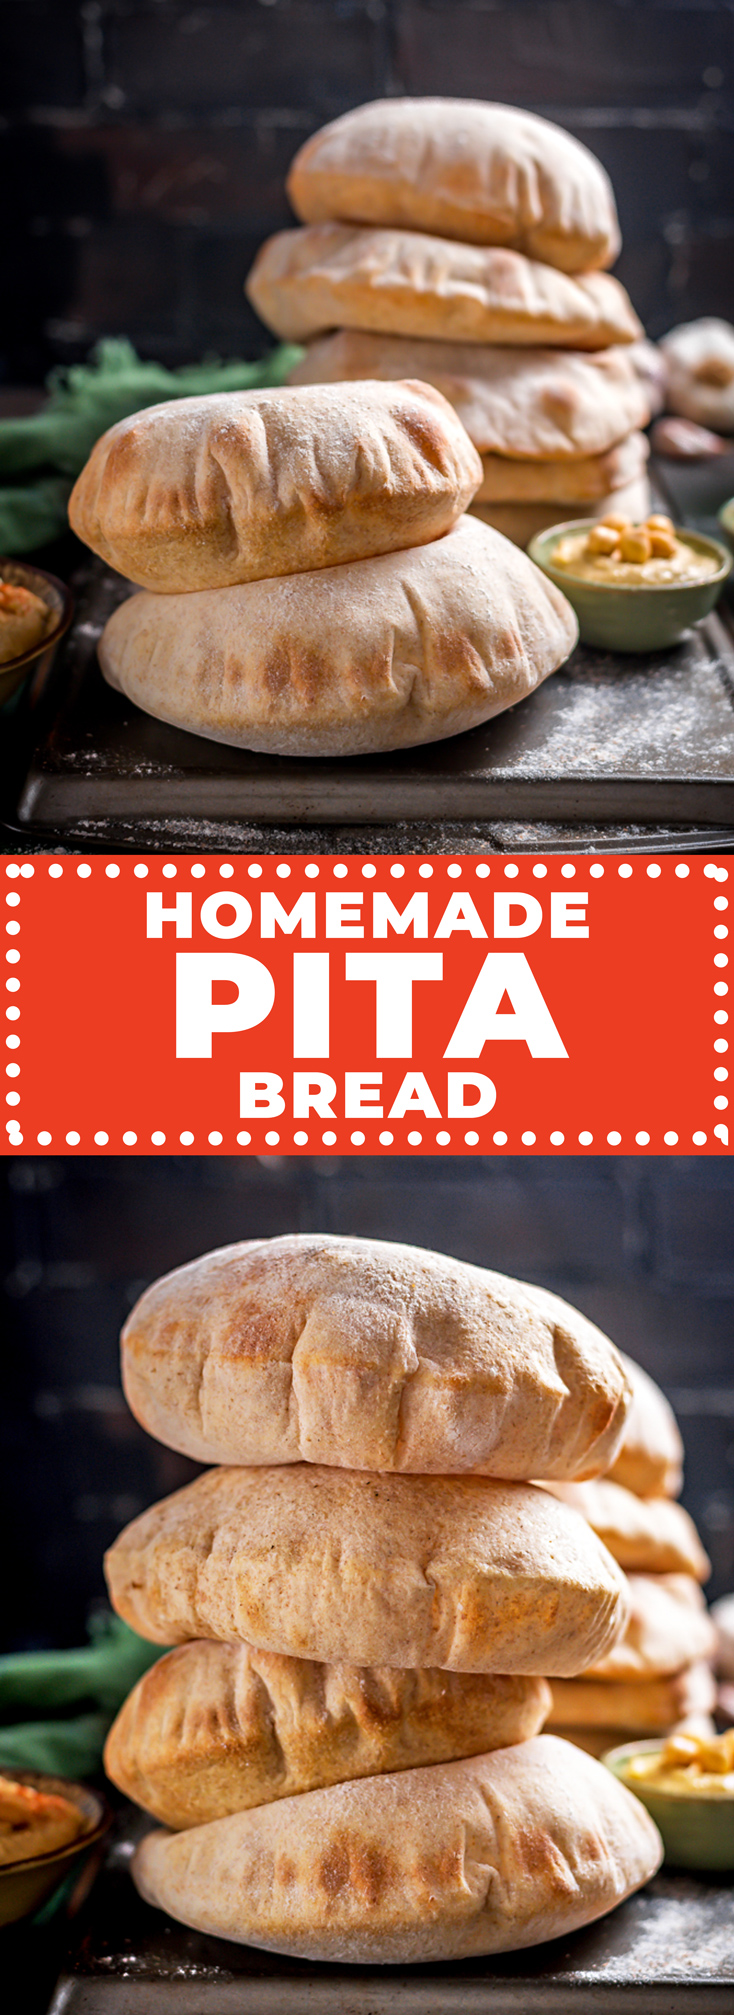 If warm, fluffy, poofed, and perfectly-pocketed pitas are what you're looking for, it doesn't get better than this recipe for Homemade Pita Bread. They're surprisingly simple to make and leagues better than the store-bought stuff! | hostthetoast.com